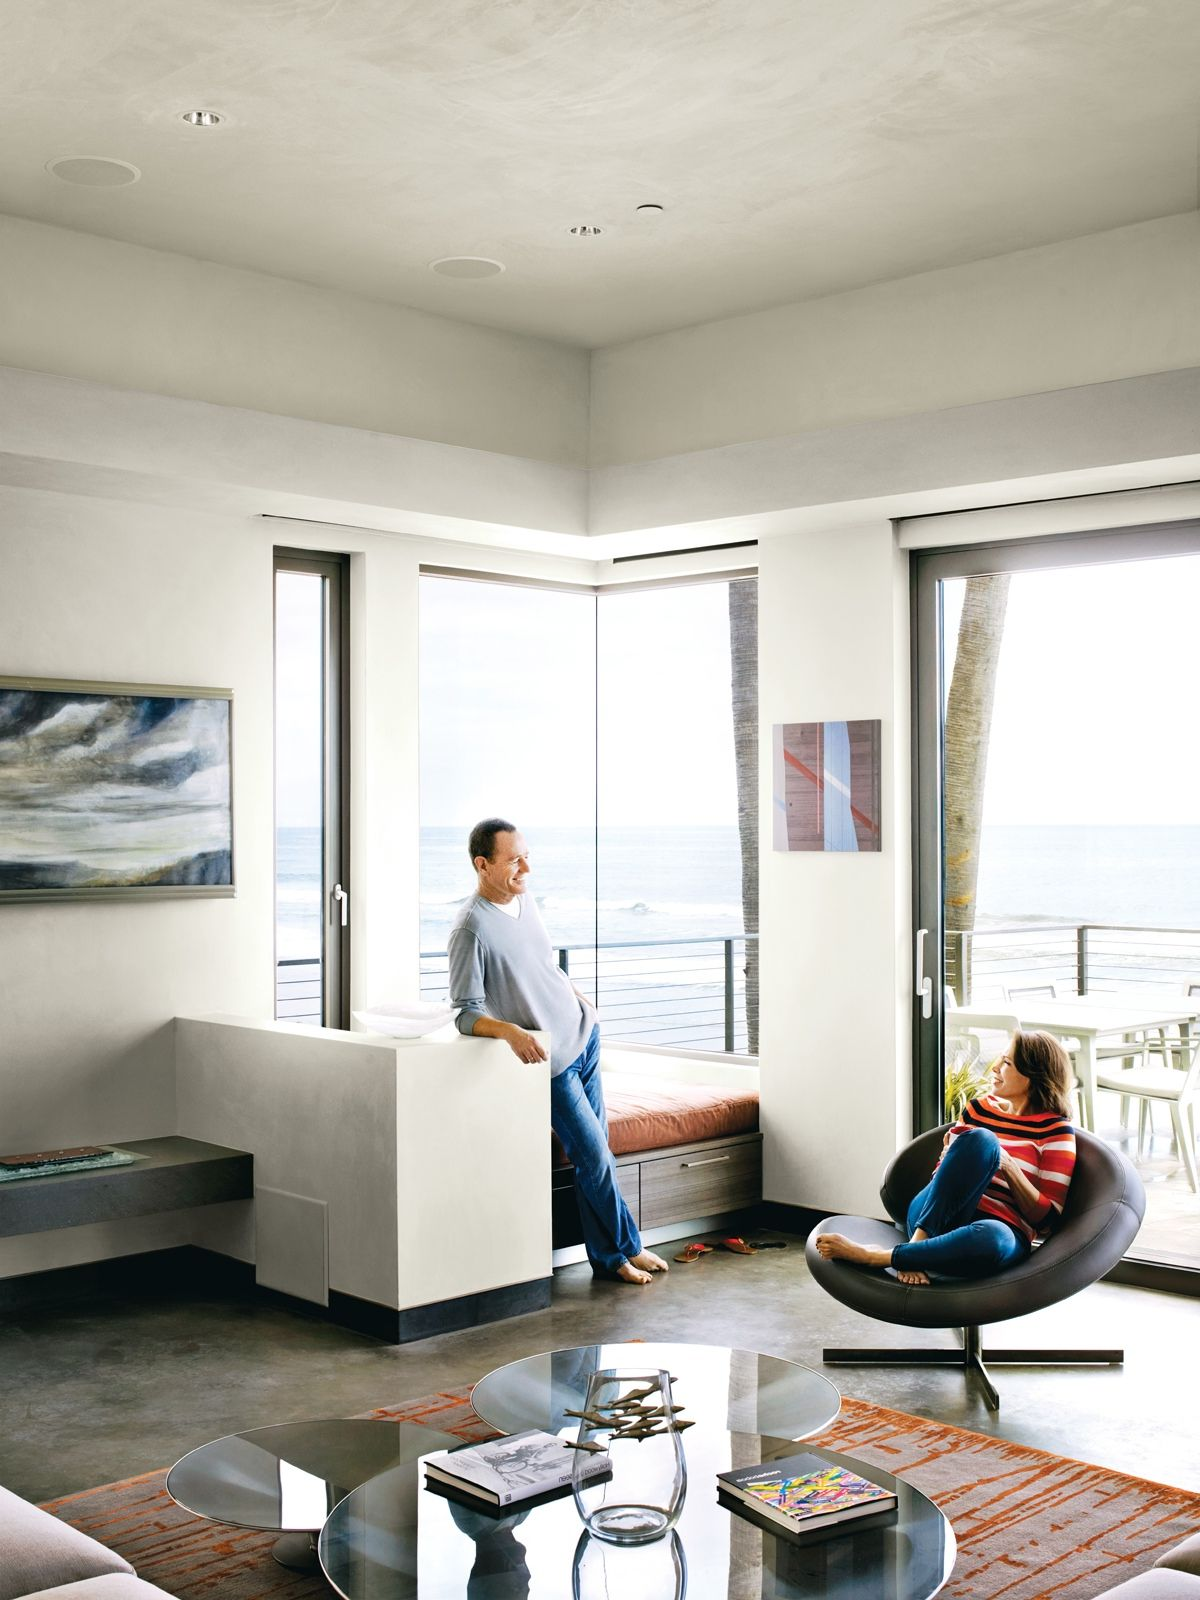 interior, Modern Home Design Ideas With Glass Window With Ocean View ...